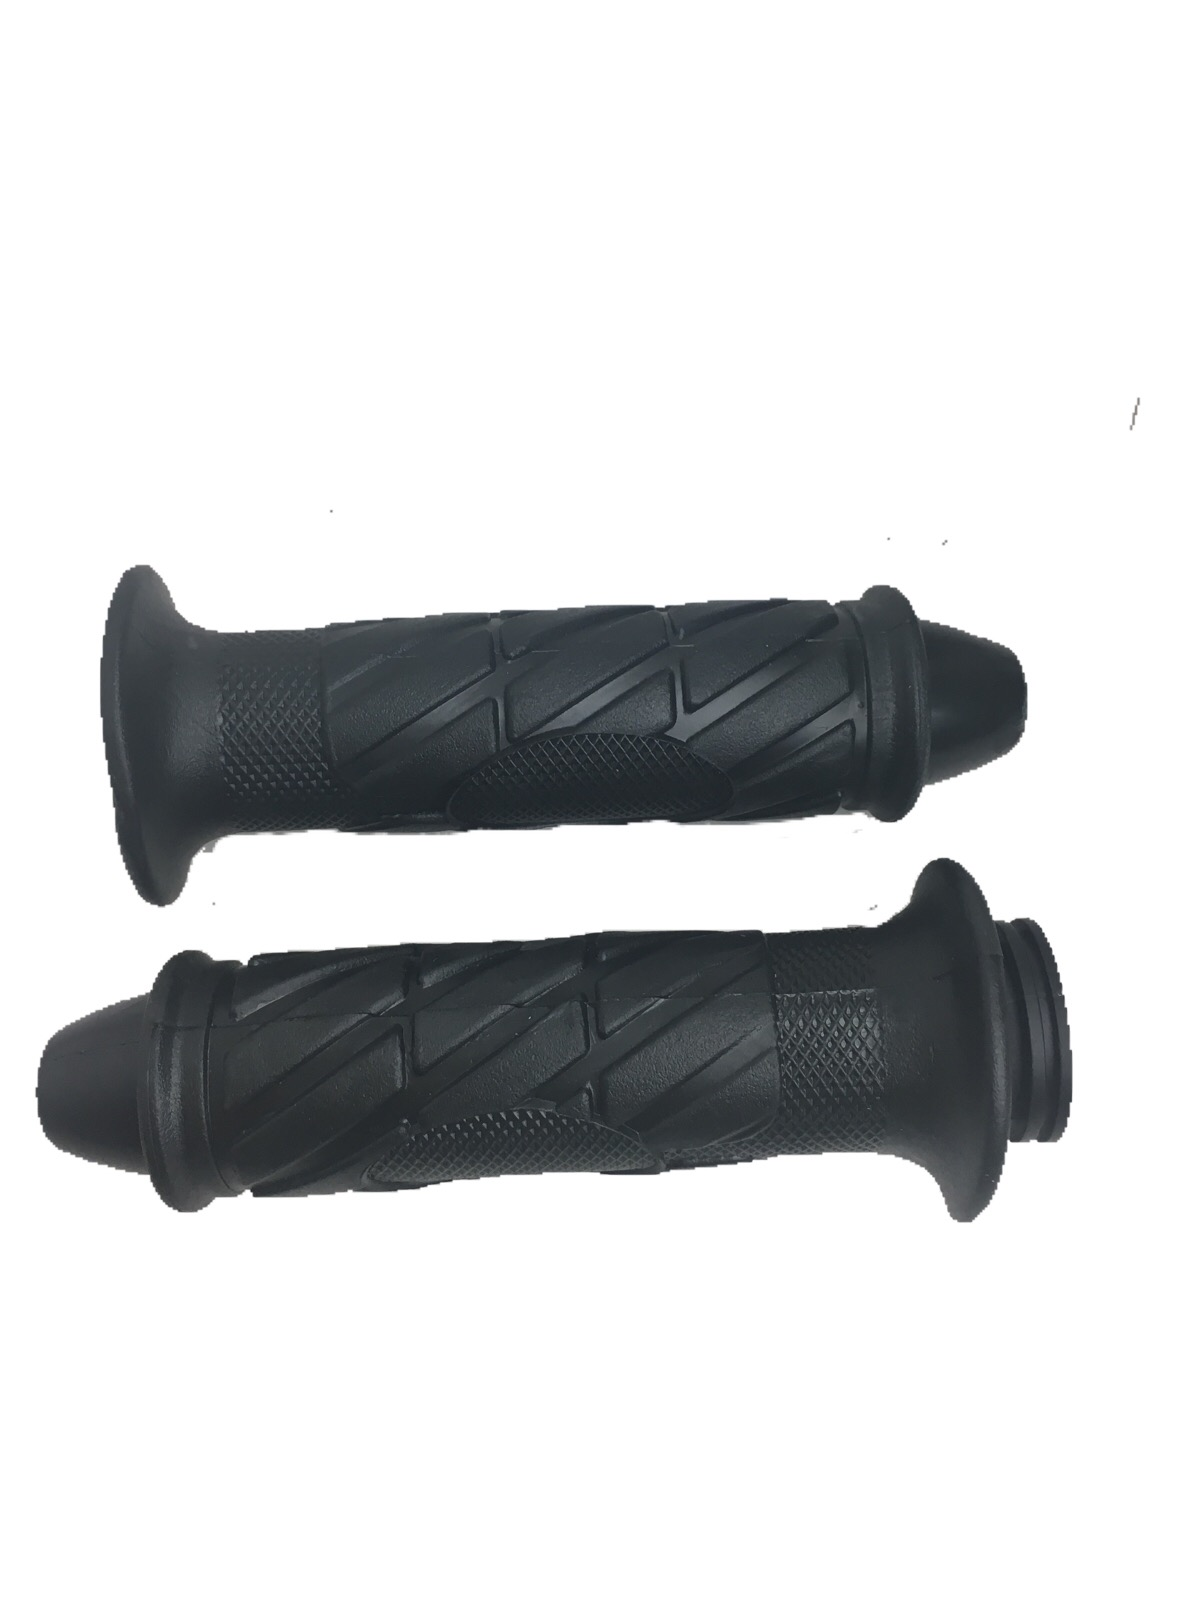 Right Left Handle Throttle Grip Vento Triton r4 Scooter-839 7/8